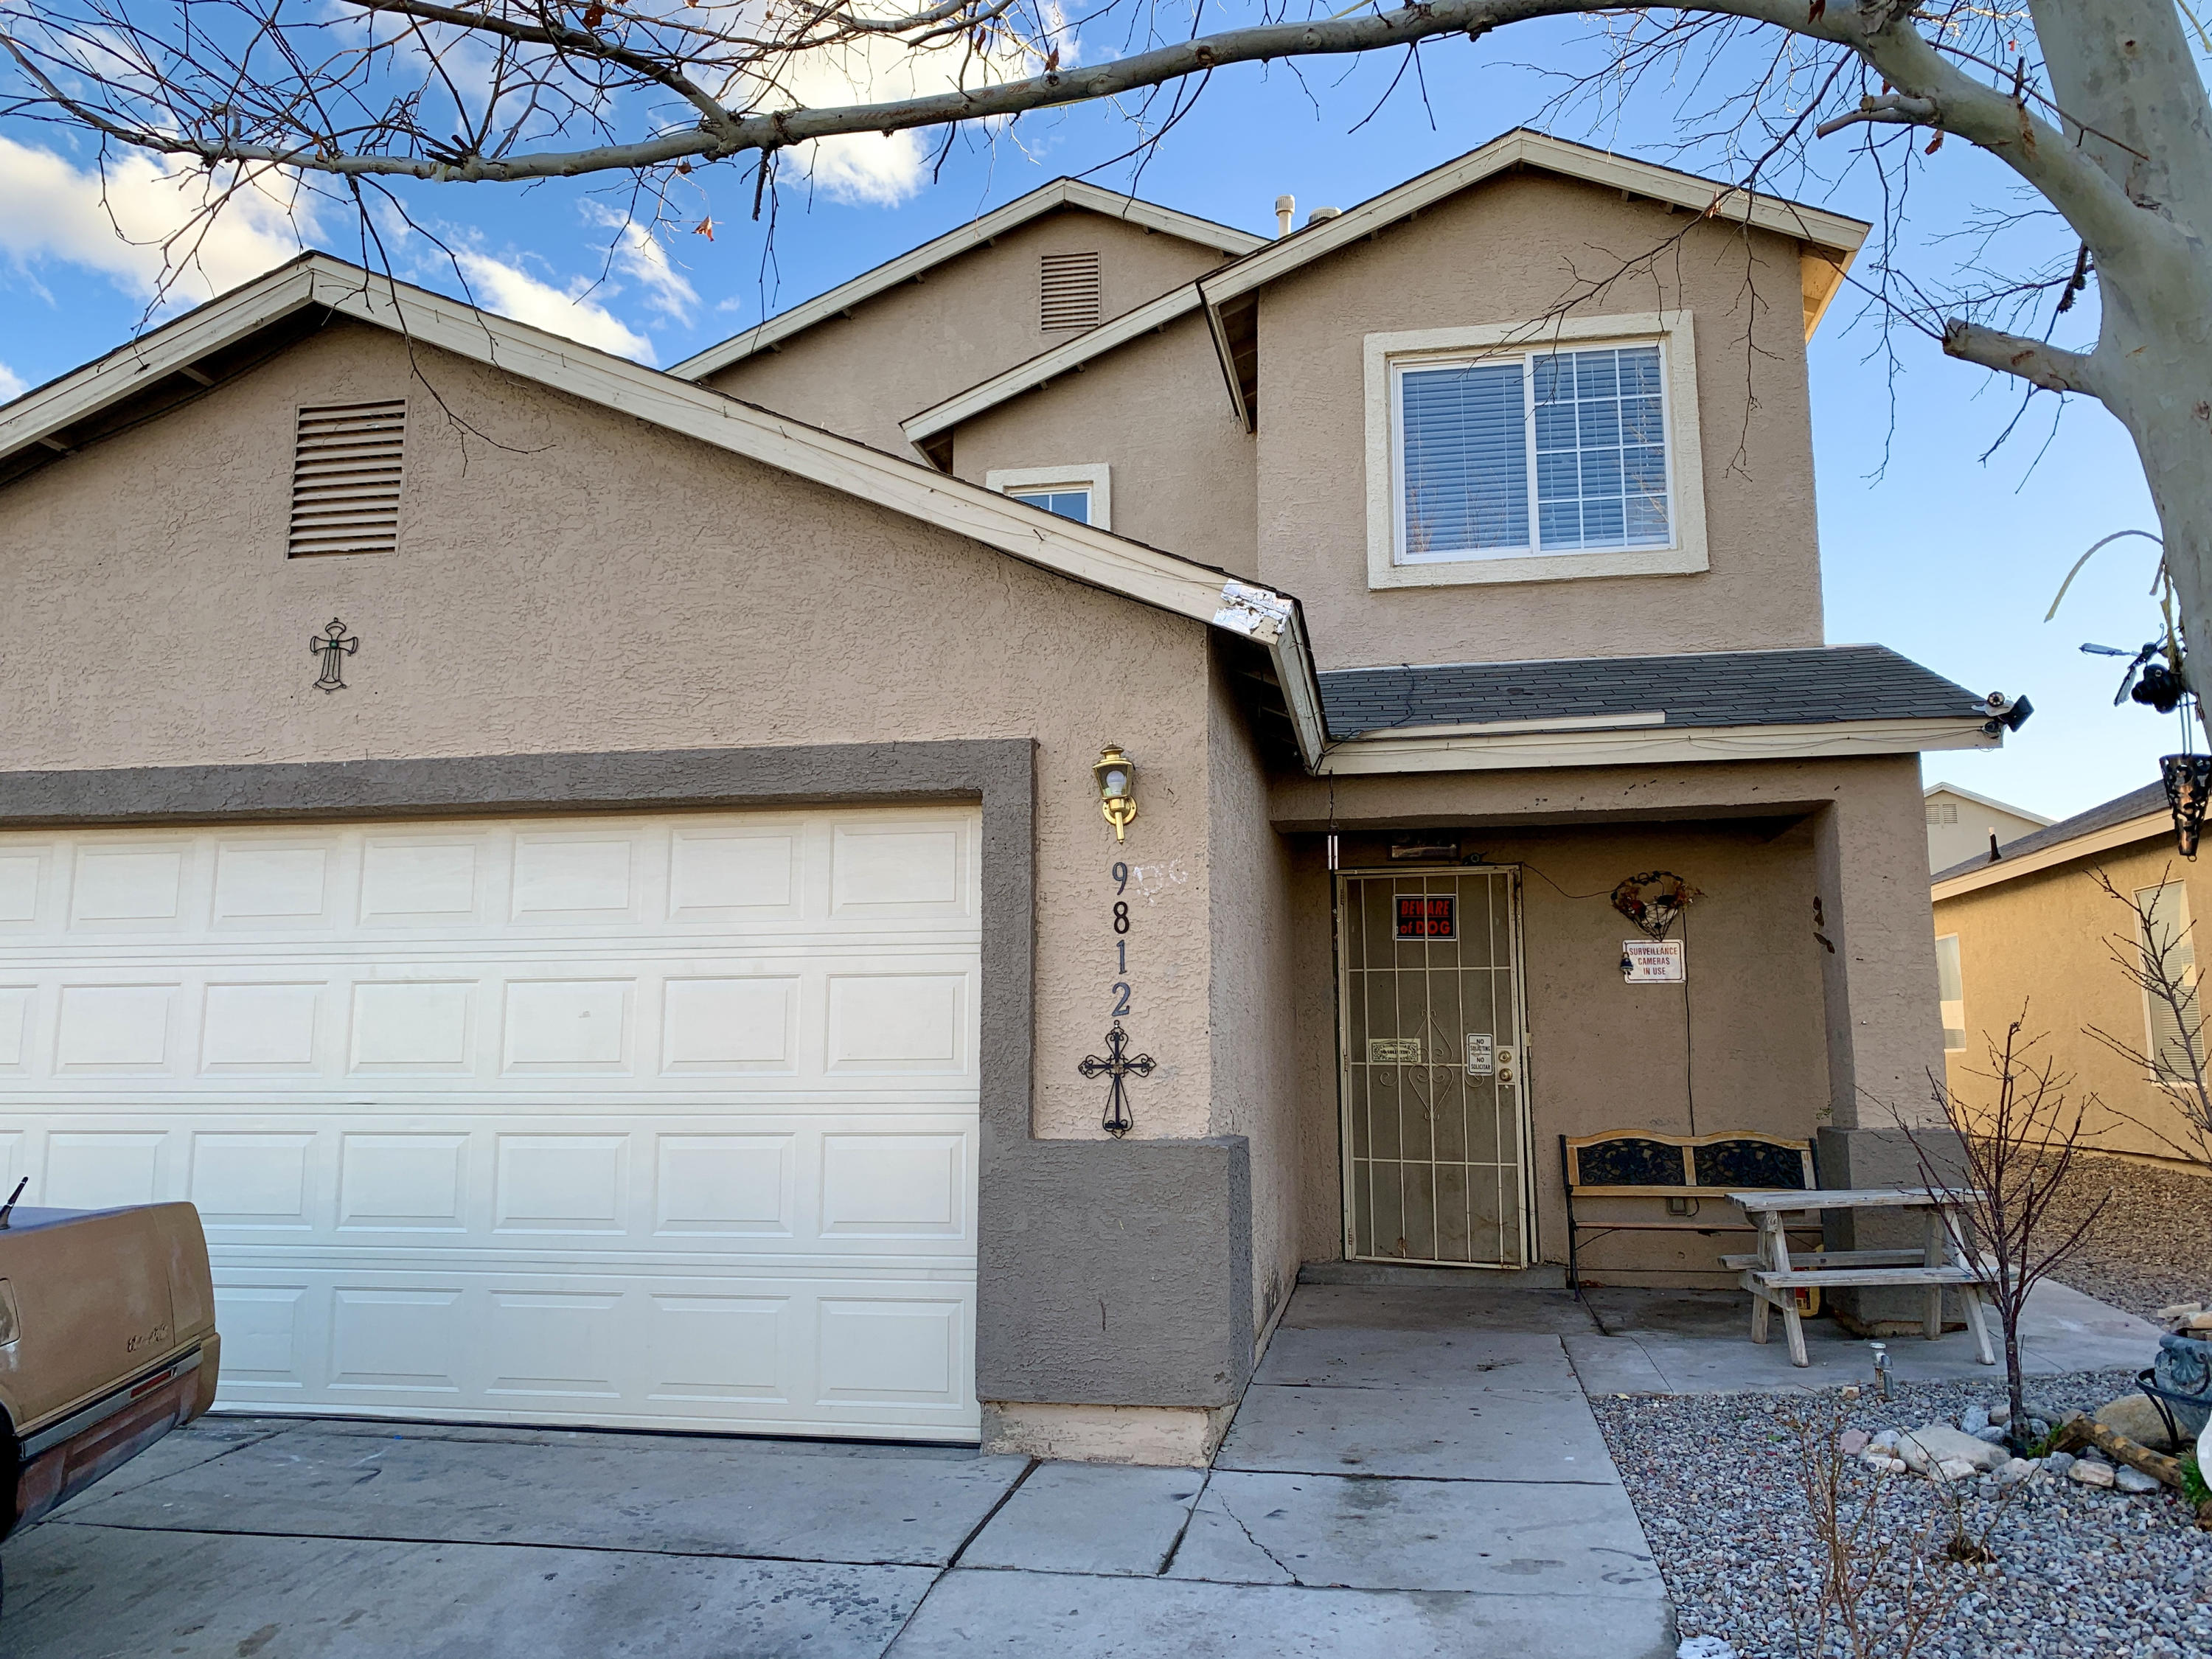 Back on the market!!  Buyer didn't qualify 2 days before closing.  Spacious 2-story in Longford neighborhood, located near shopping and restaurants.2 living areas with 4 bedrooms  3 baths and functional kitchen rounds out this home. Refrigerated air, too!  Come take a tour and make this home your own!